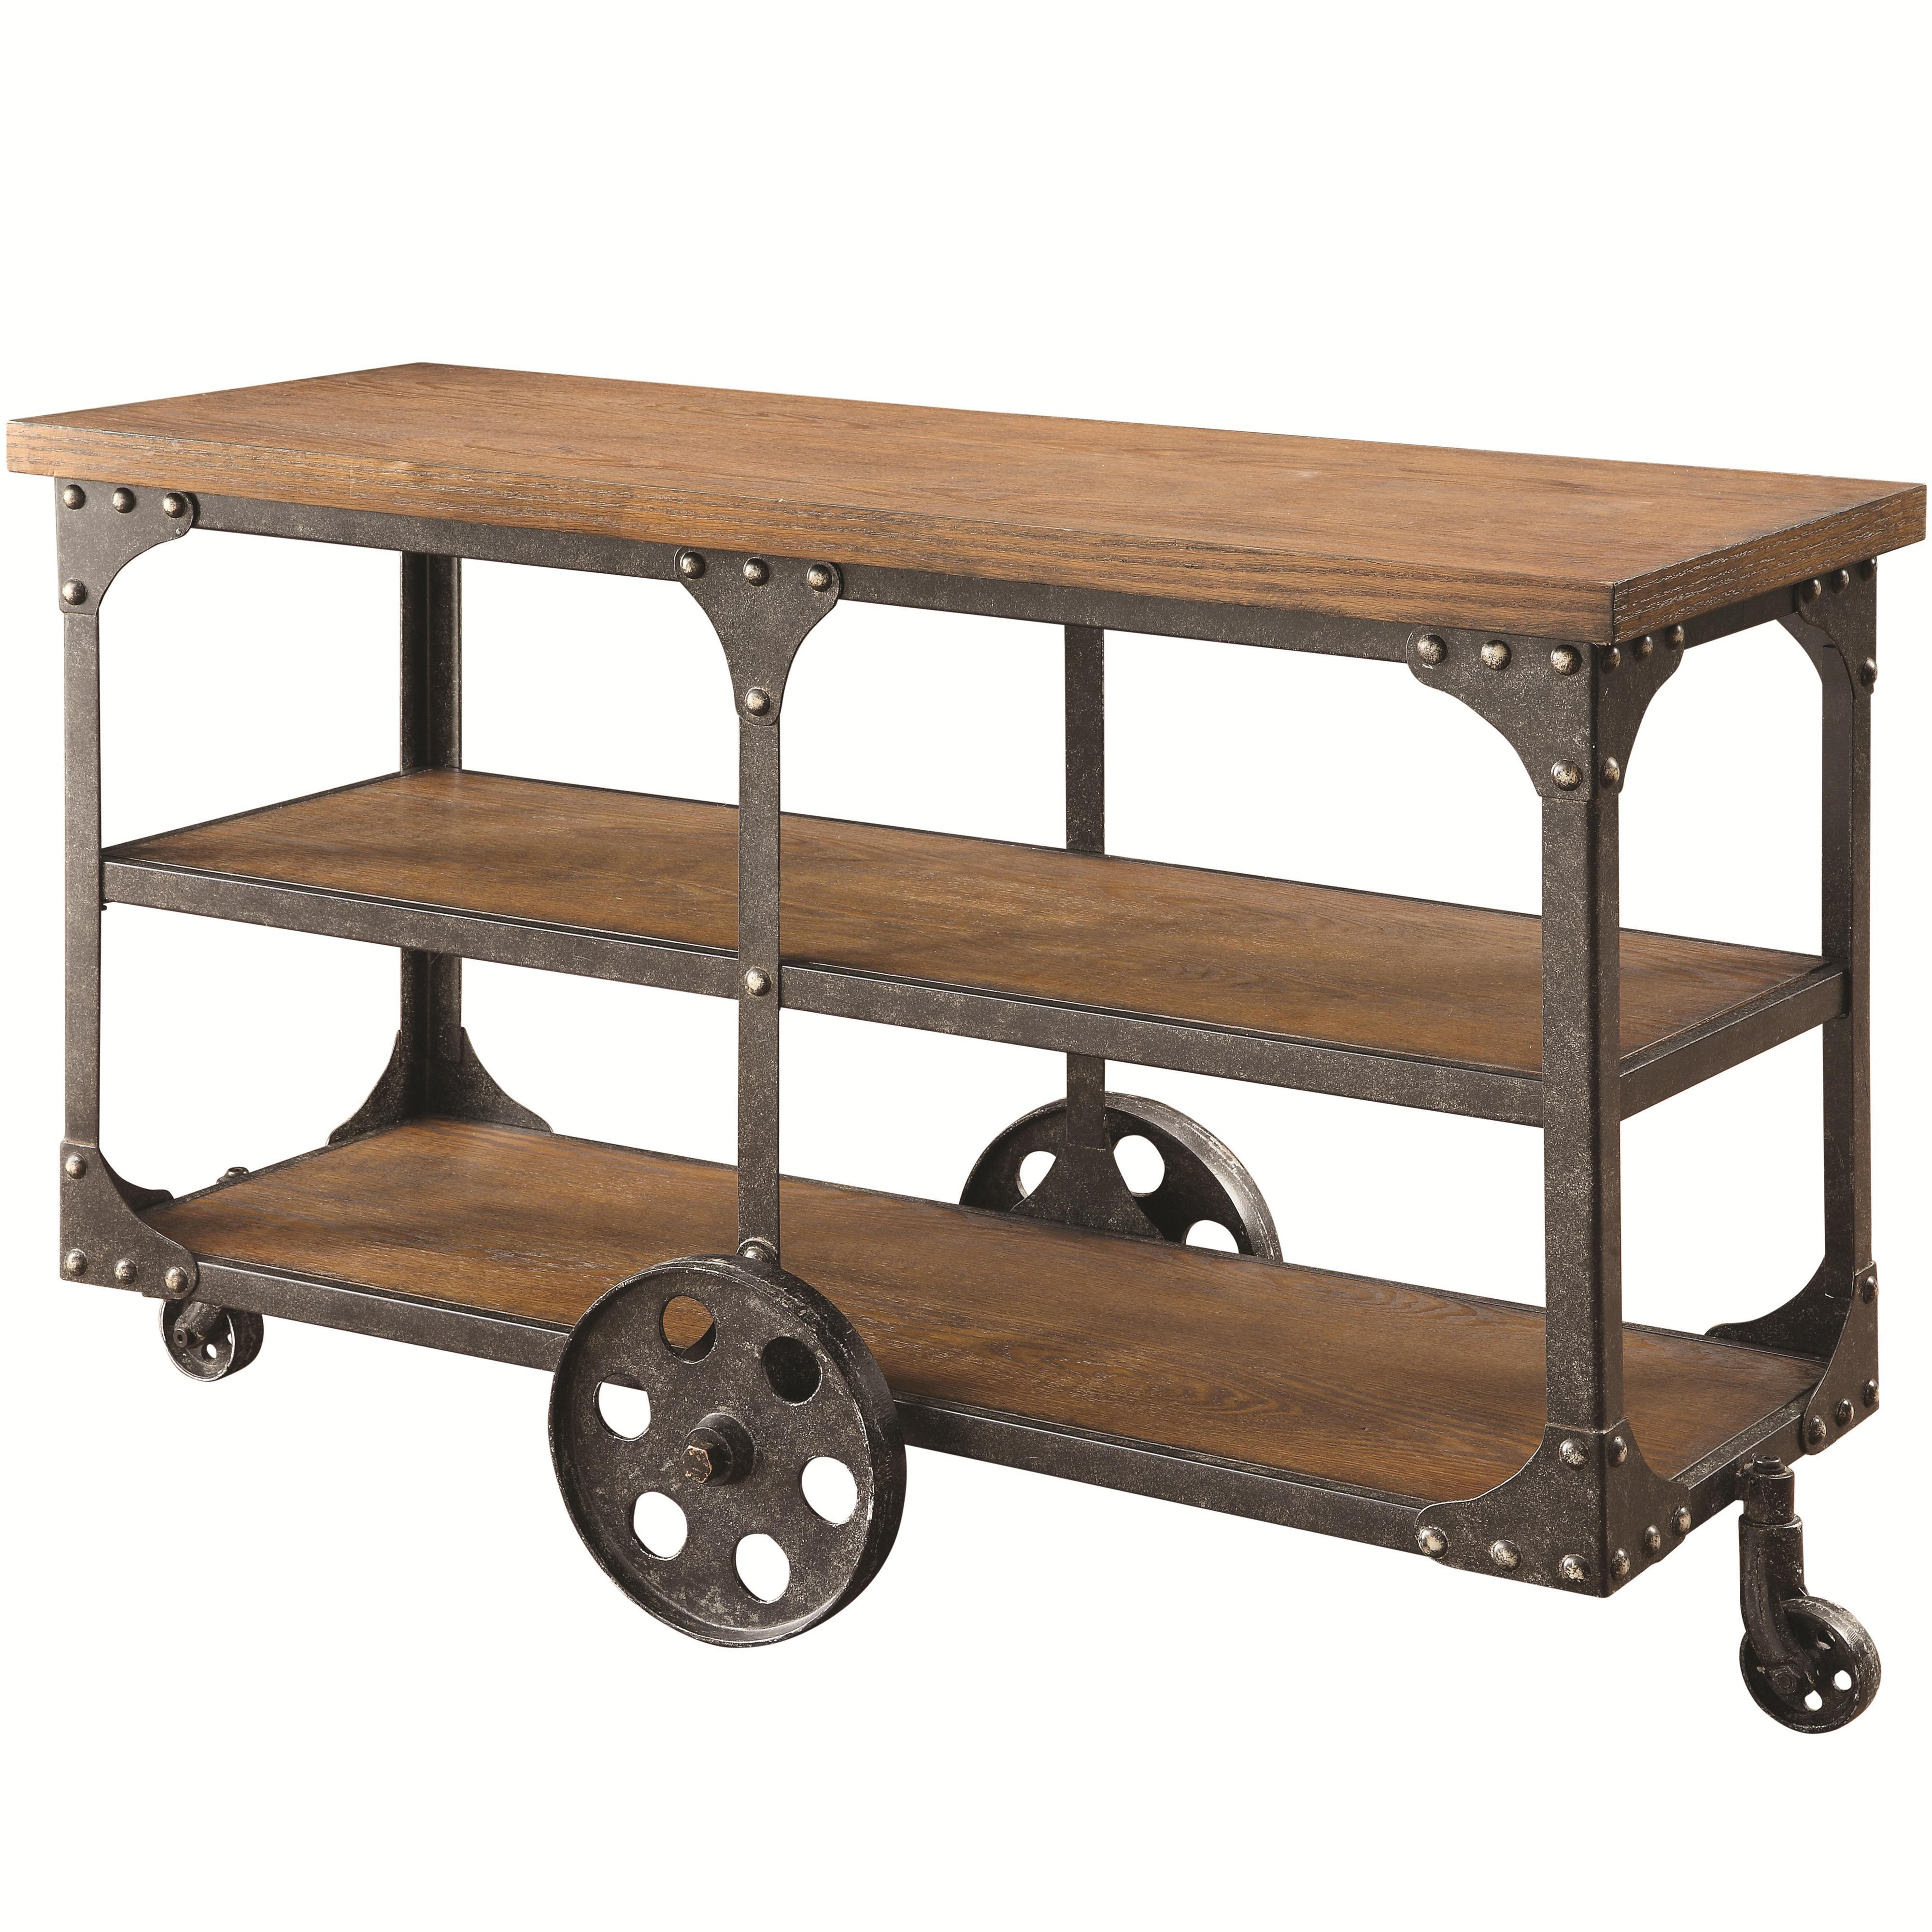 70112 Sofa Table by Coaster at Furniture Superstore - Rochester, MN